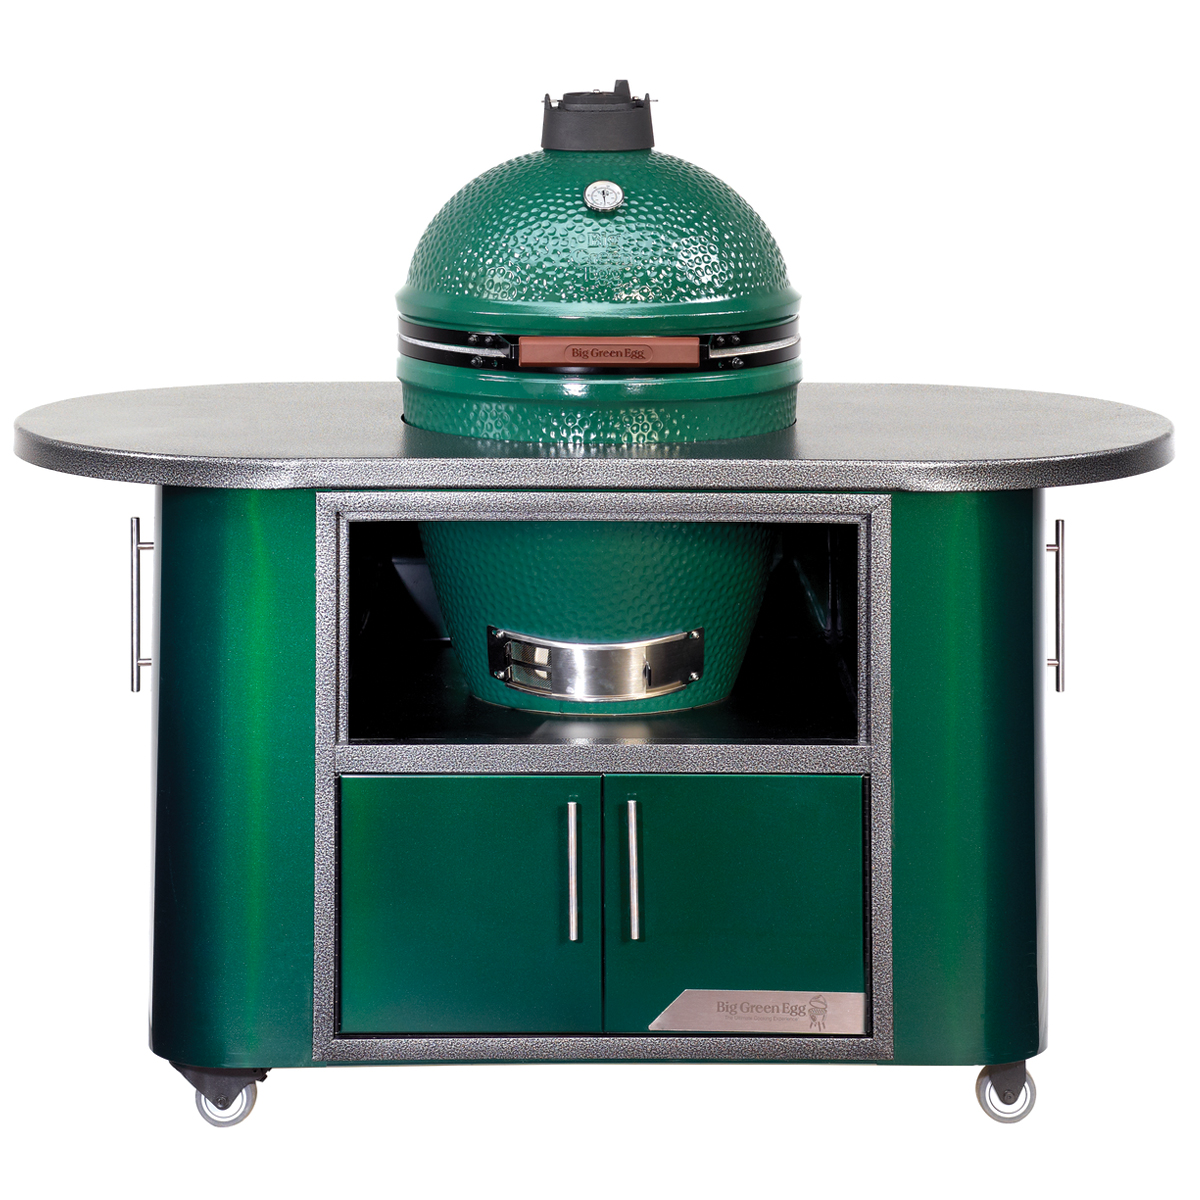 Big Green Egg Outdoor Kitchen: Big Green Egg Islands